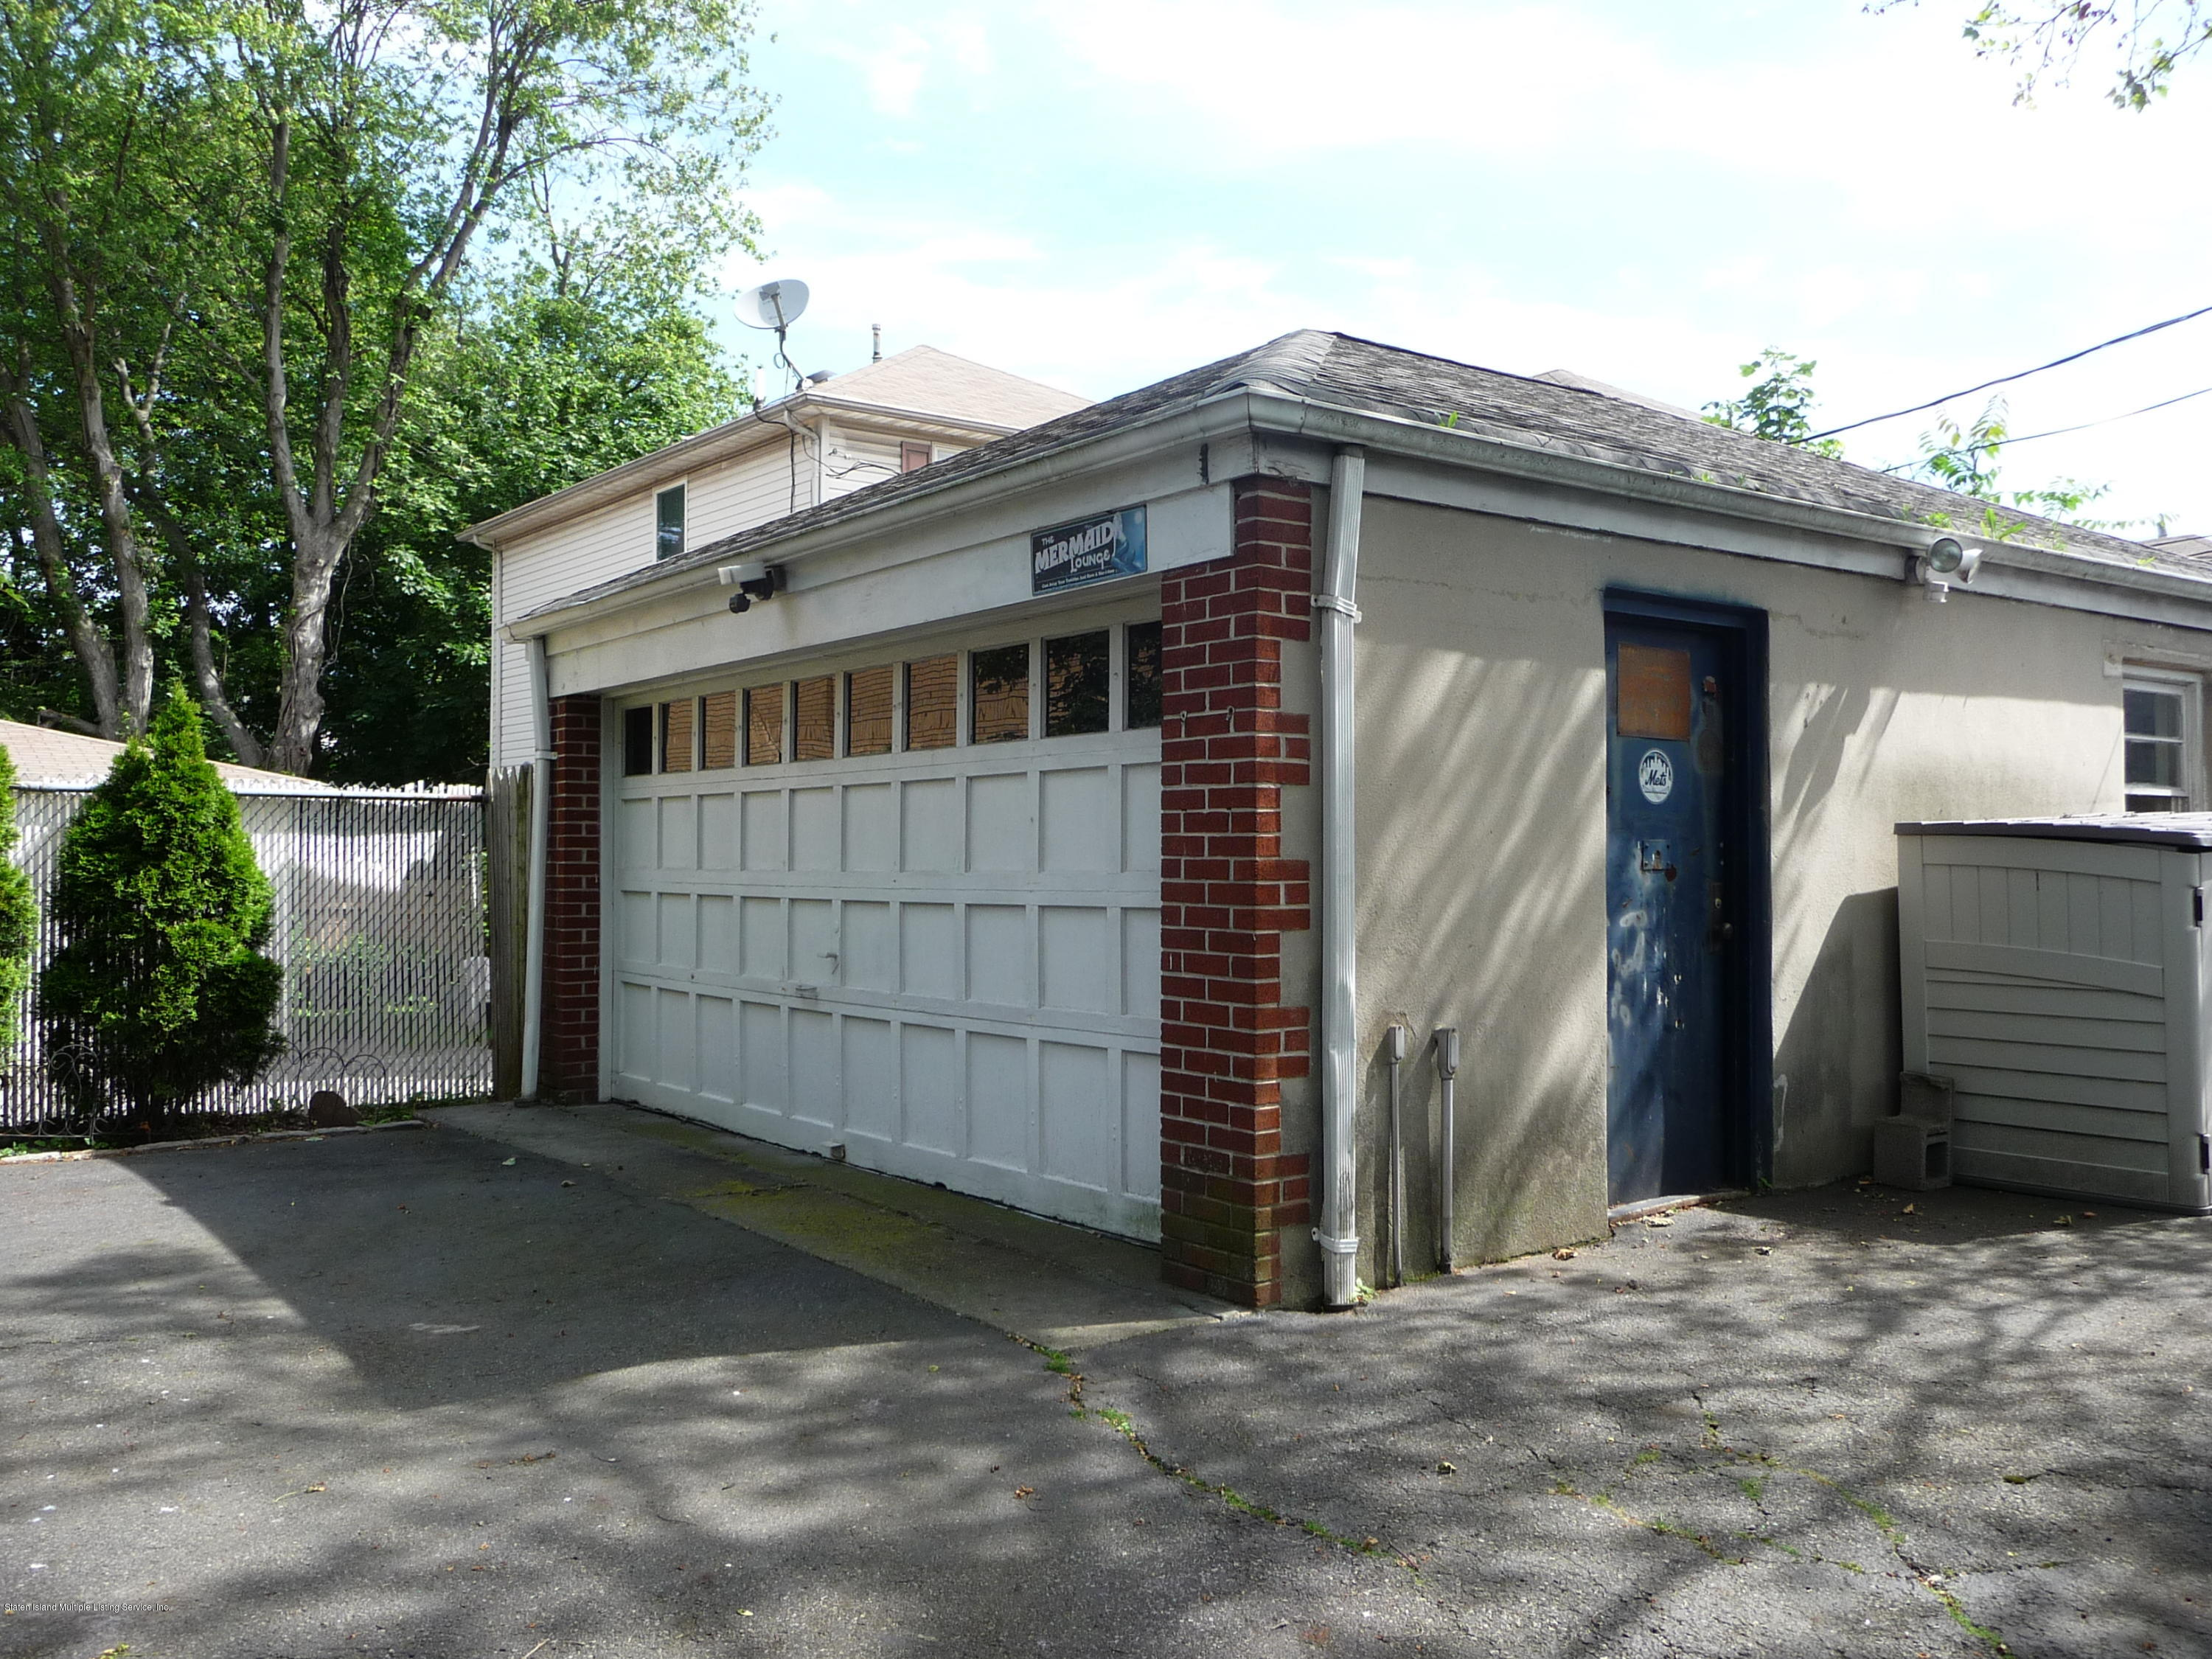 Single Family - Detached 77 Todt Hill Road  Staten Island, NY 10314, MLS-1129718-58